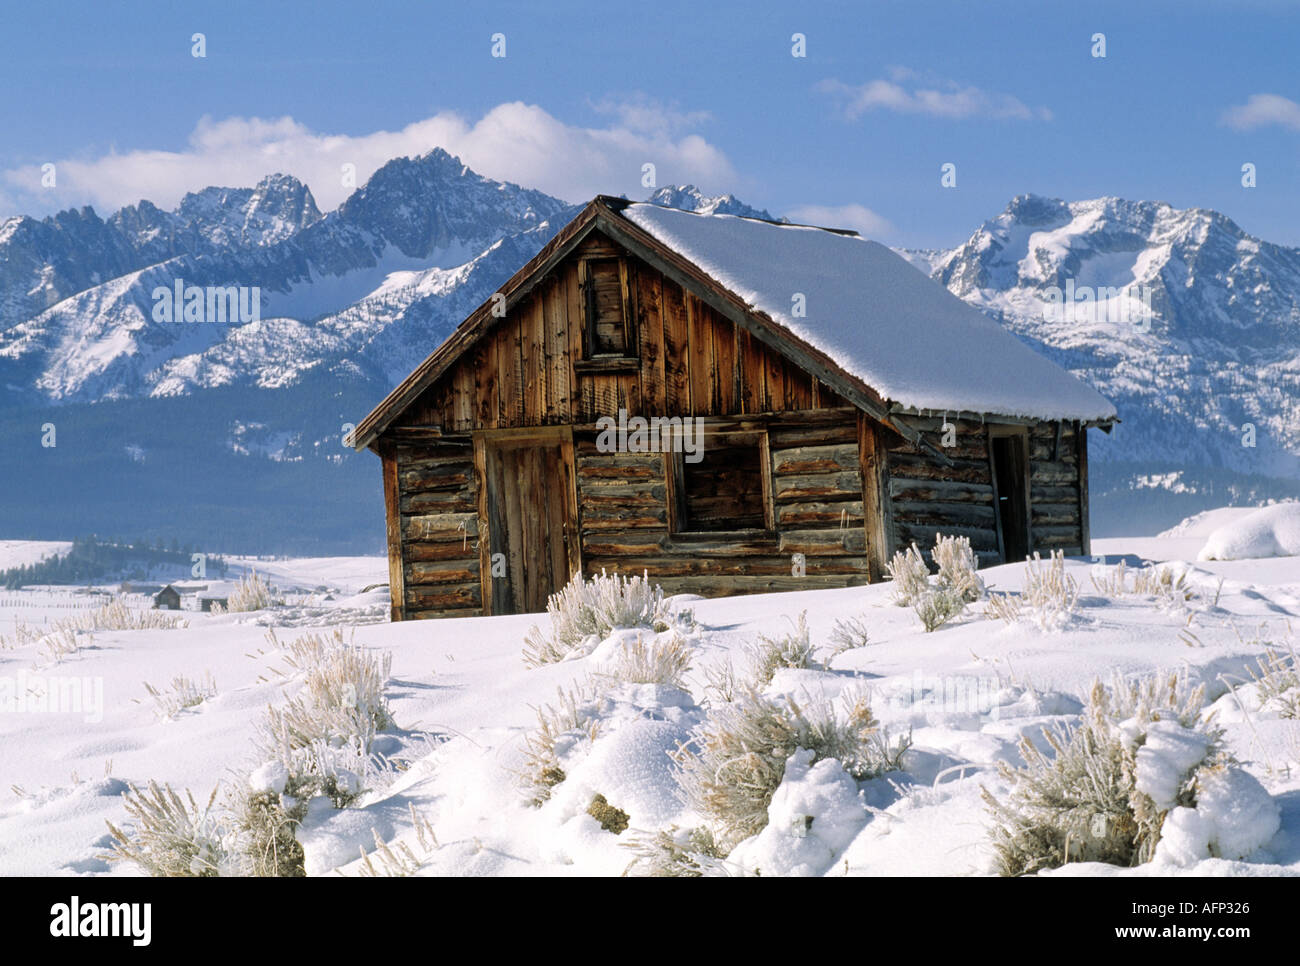 USA Stanley Idaho Winter Scene Of Rustic Trappers Log Cabin With Sawtooth Mountains In Background